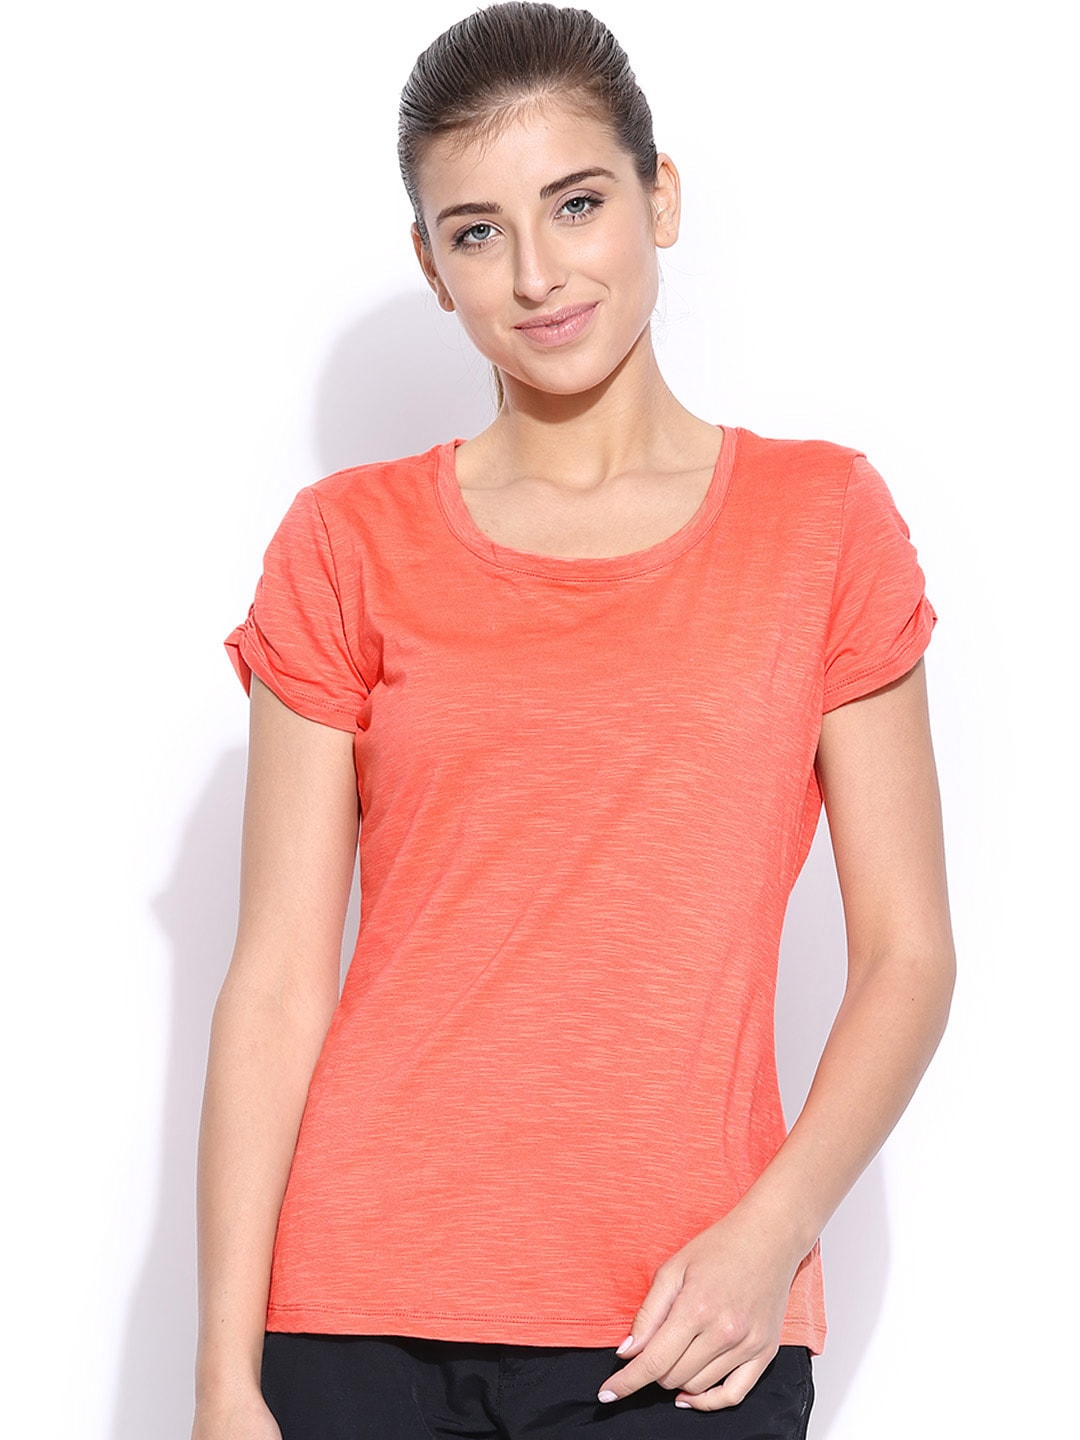 82619dc98bdcb Koton Women Tops   T-Shirts Price List in India 28 April 2019 ...